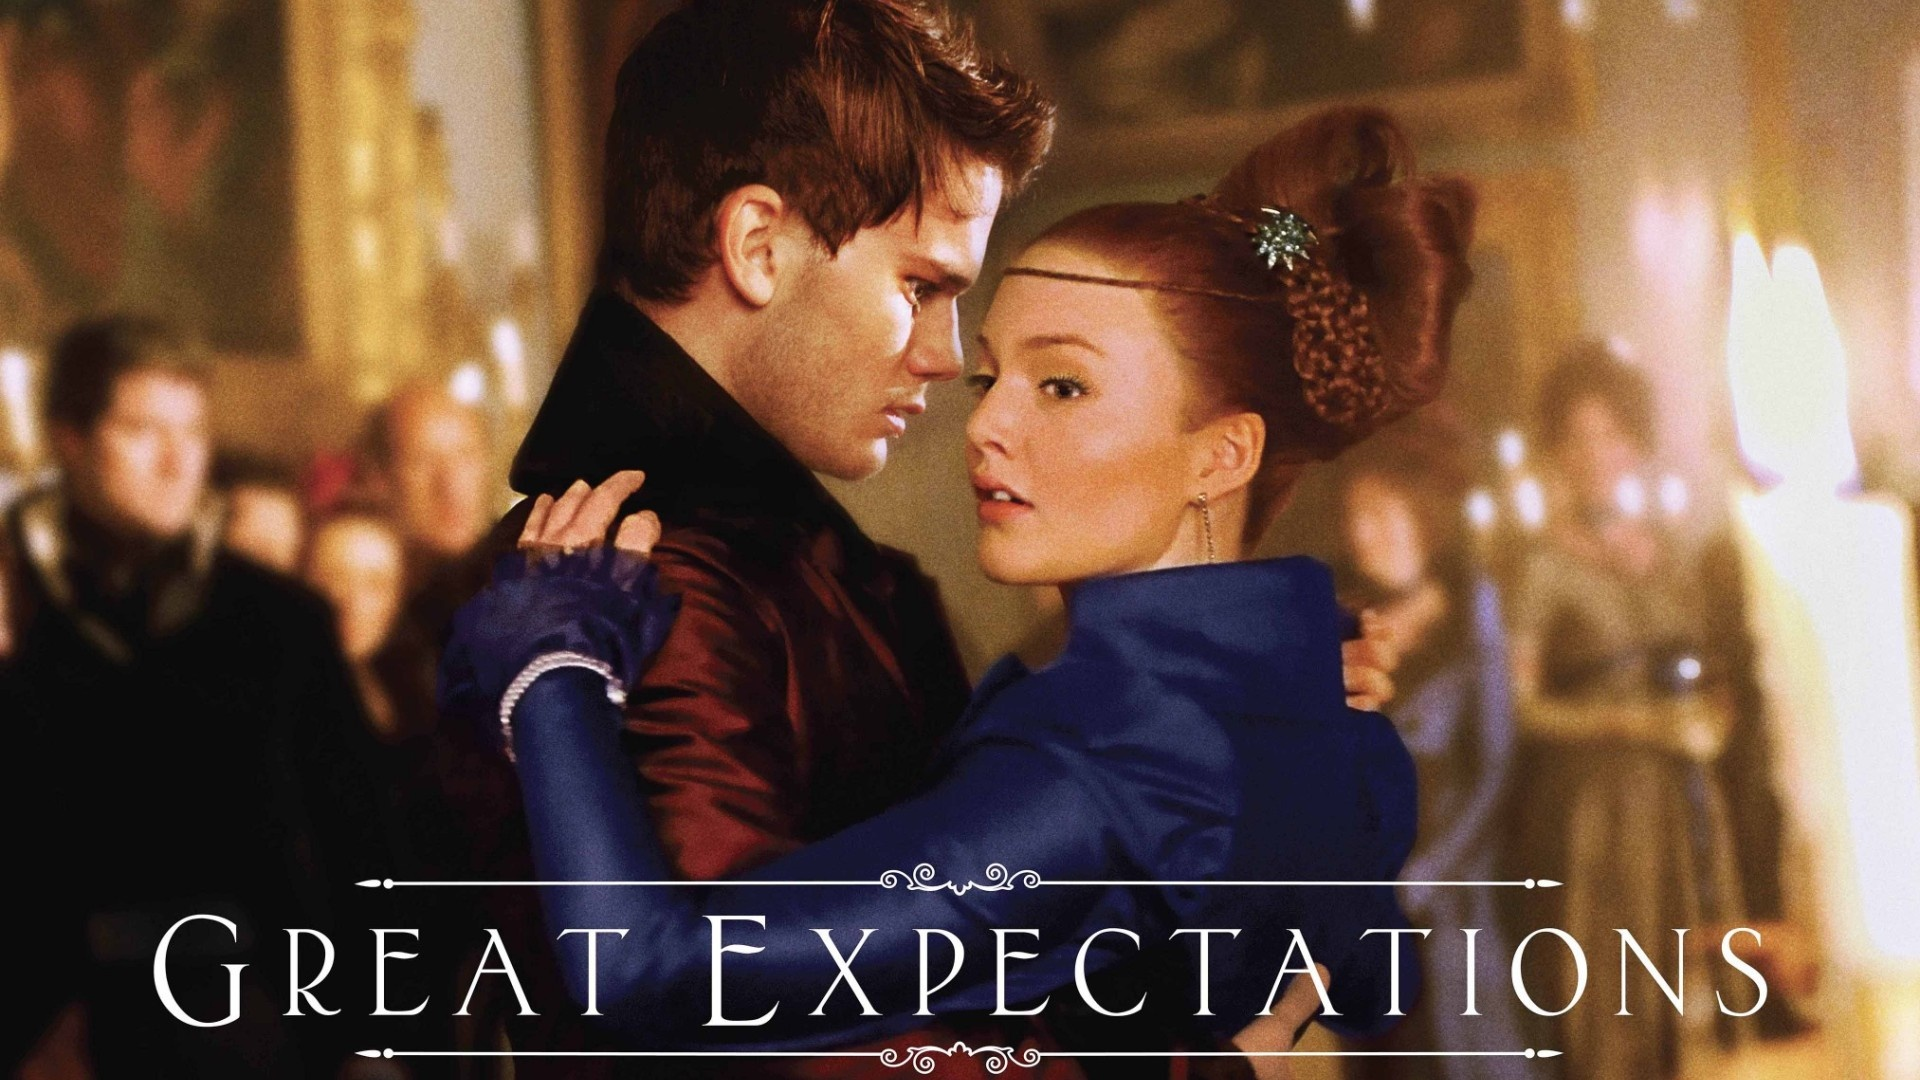 """greate expectation """"great expectations"""" q&a more charles dickens albums a tale of two cities a christmas carol show all albums by charles dickens home c charles dickens."""